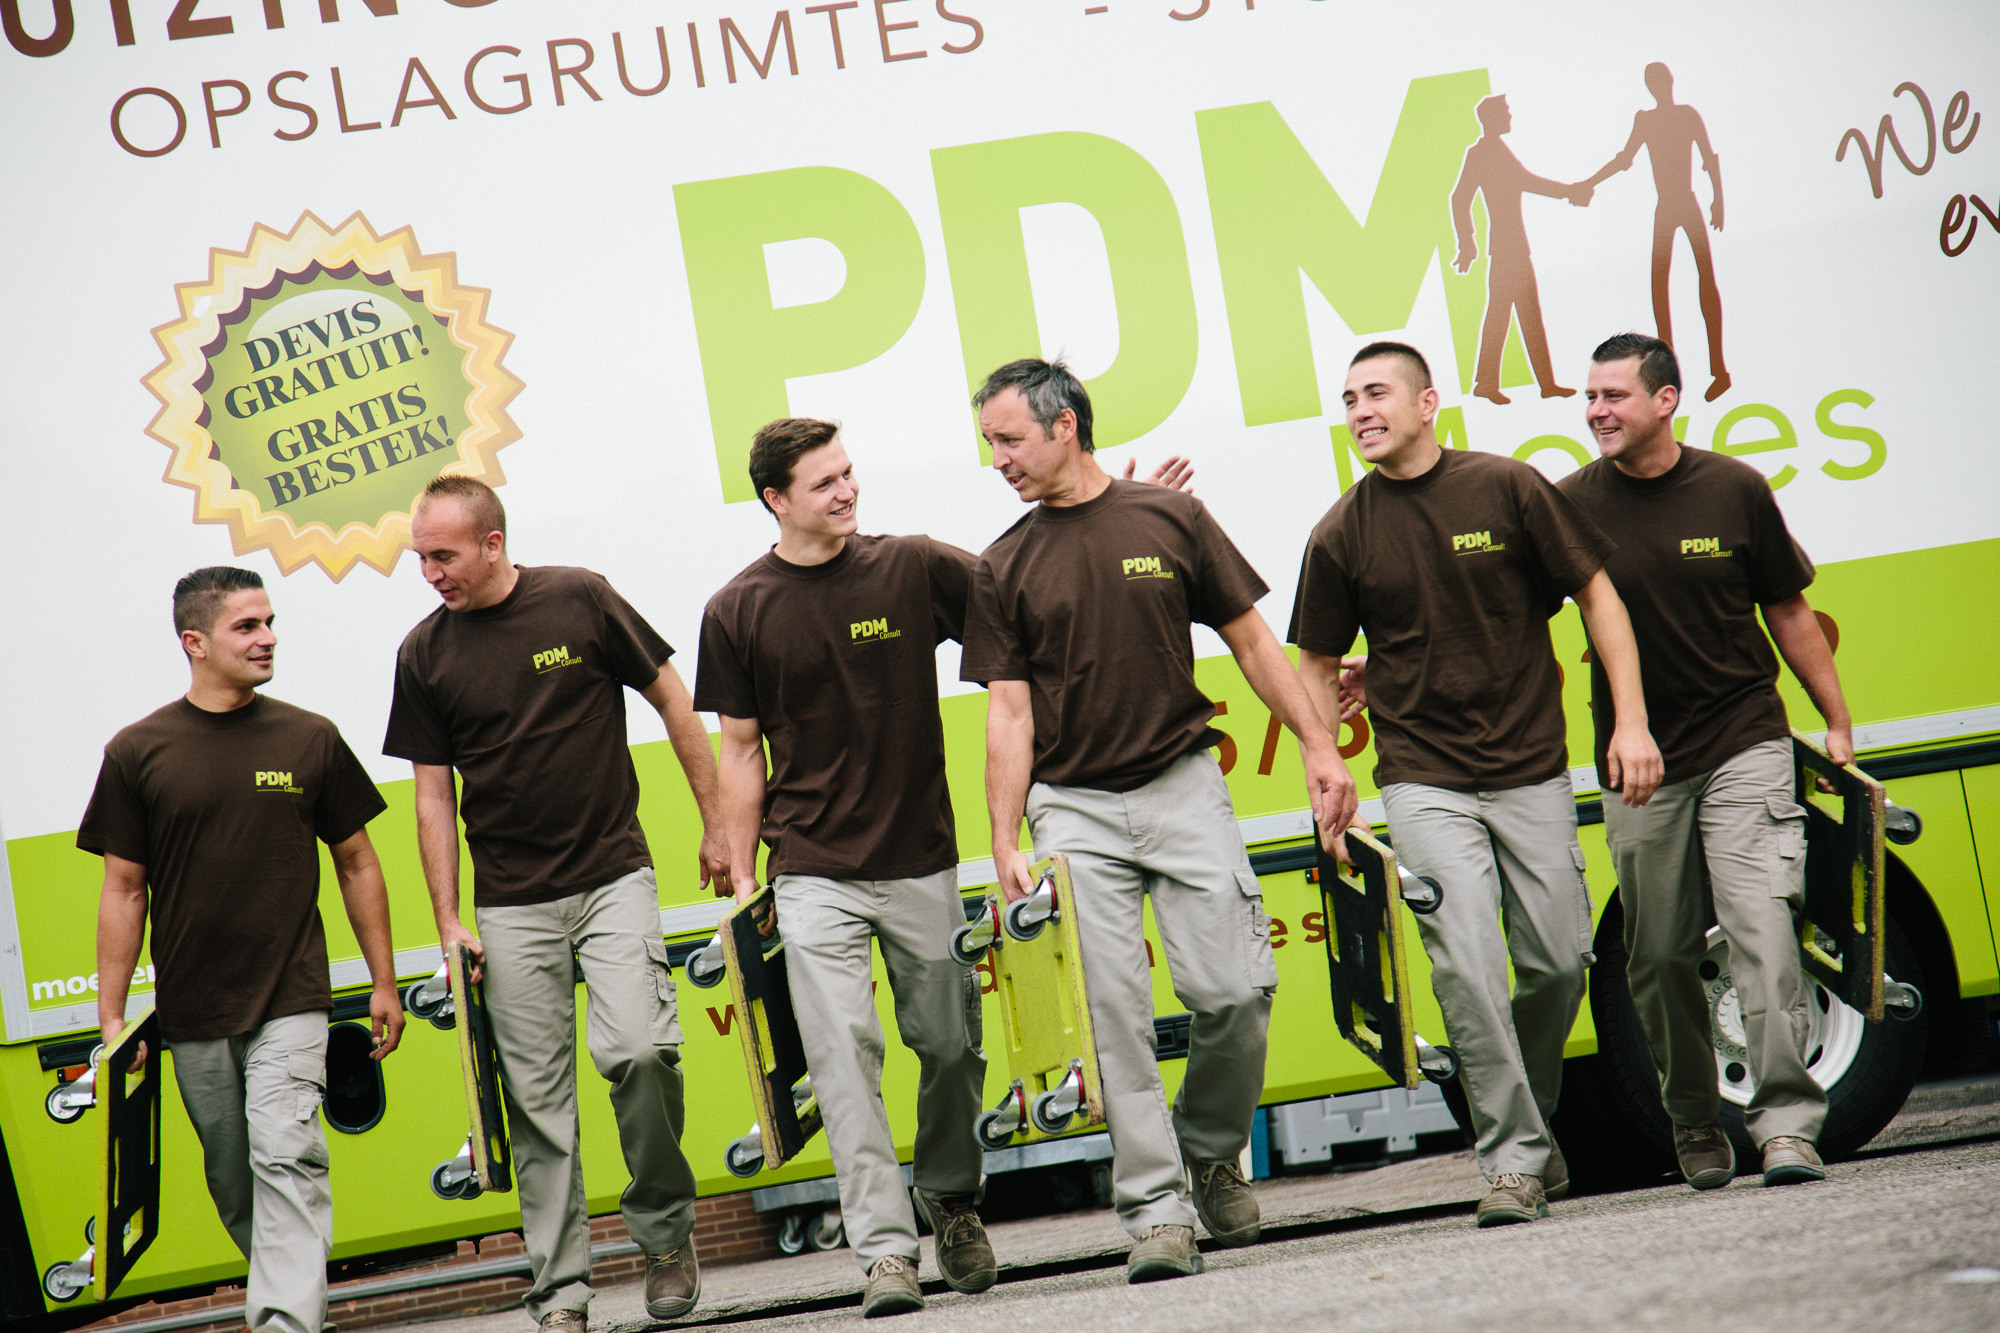 PDM Moves in beeld